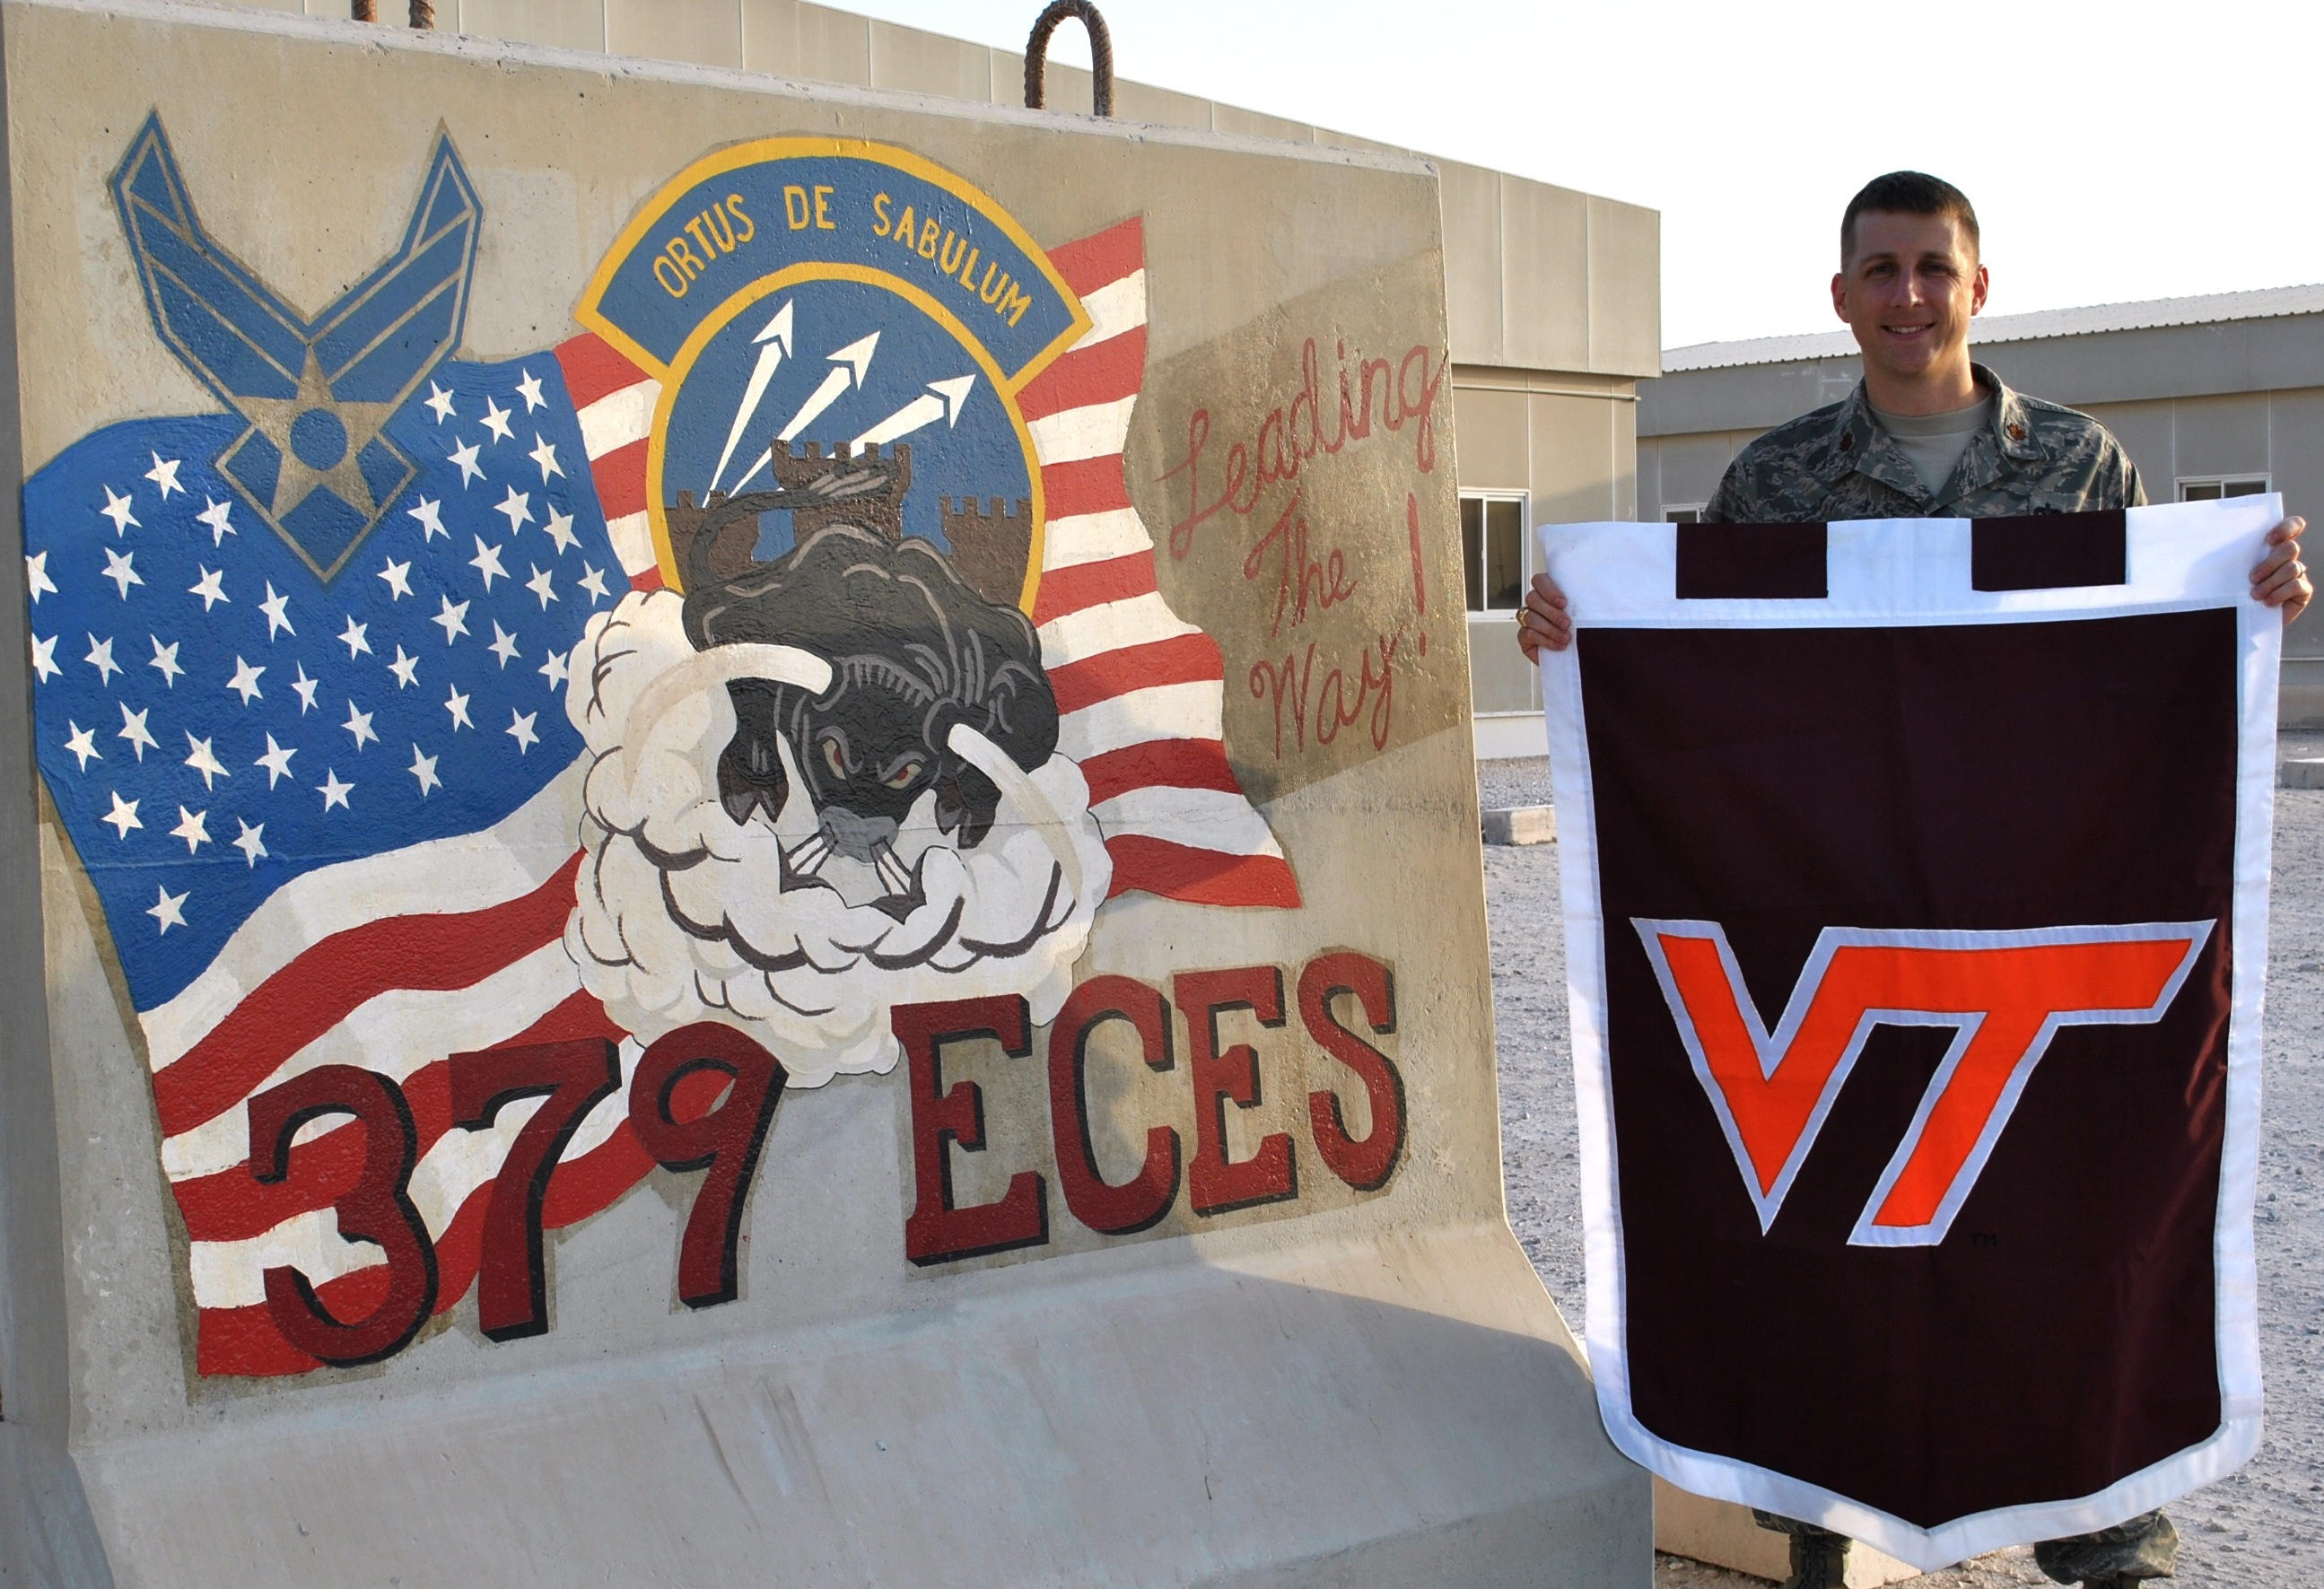 Maj. Ryan Crowley, U.S. Air Force, Virginia Tech Corps of Cadets Class of 2001 next to his unit sign.